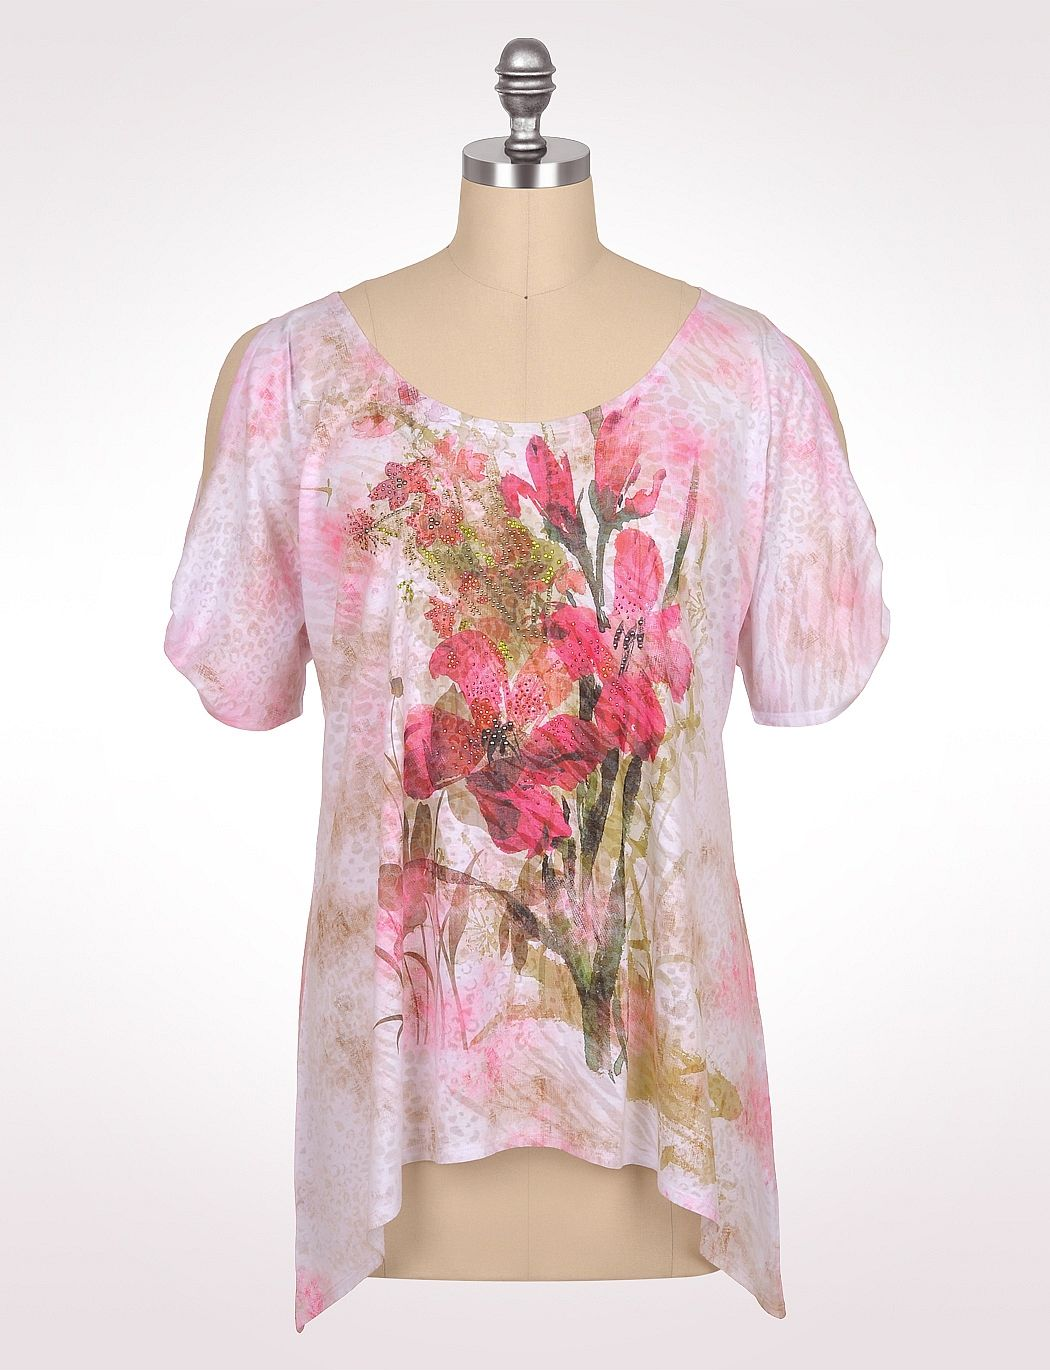 Women's | Tops | Cold-Shoulder Floral Burnout Tee | dressbarn